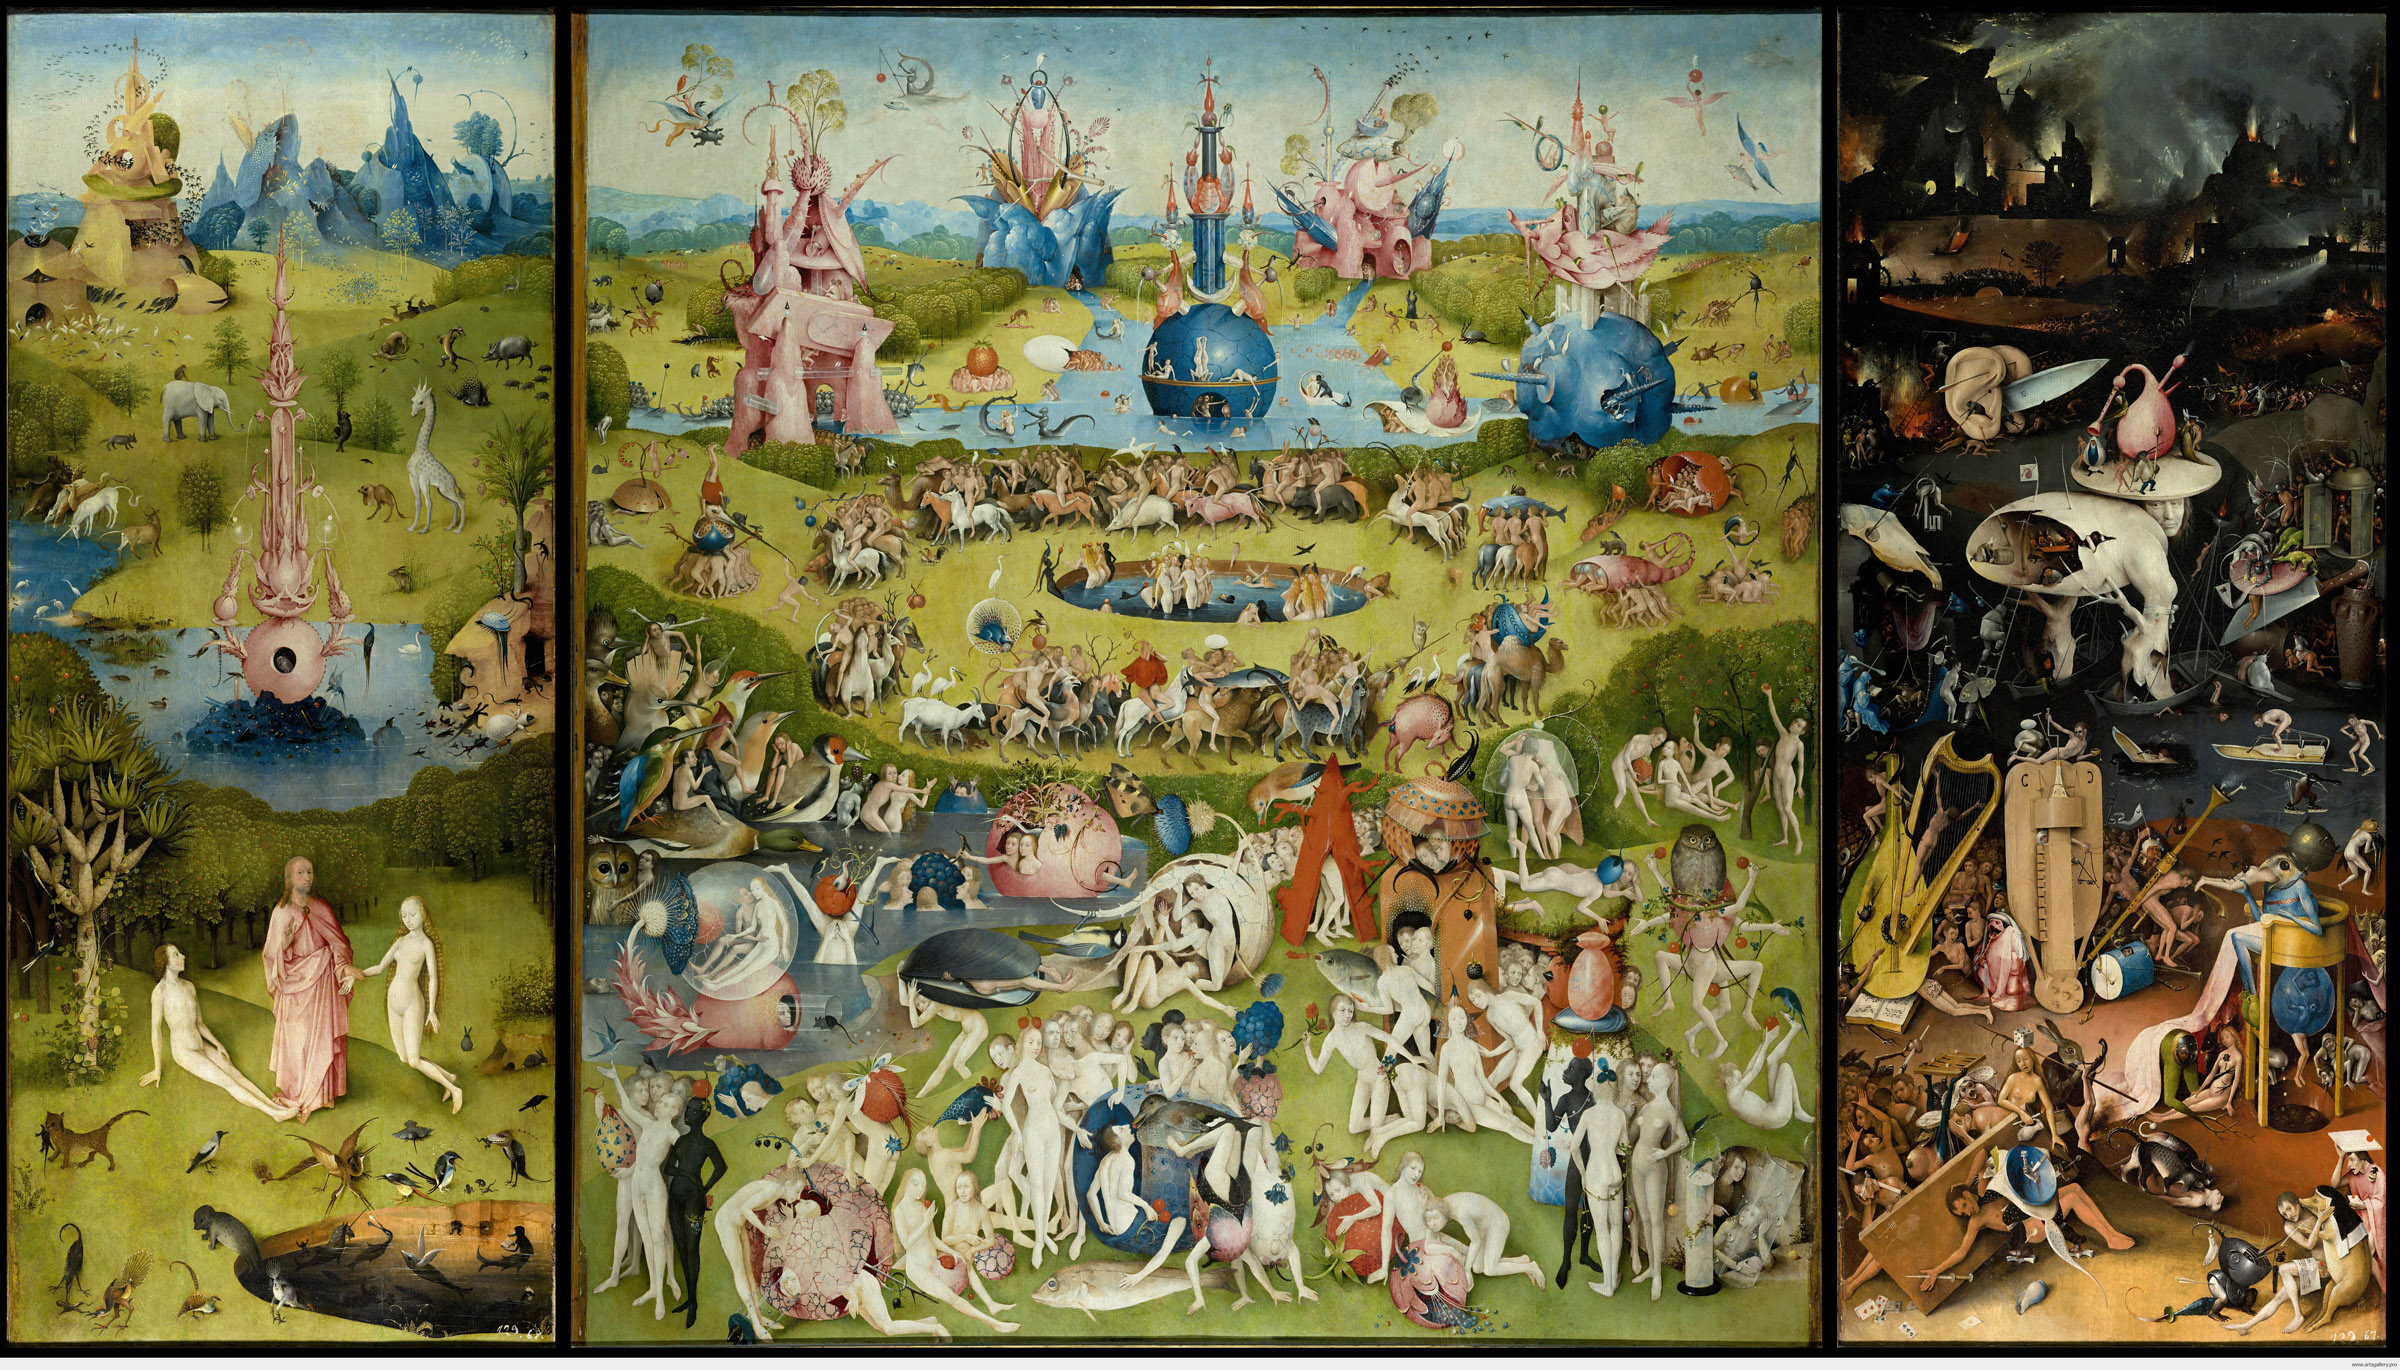 The_Garden_of_Earthly_Delights_by_Bosch_Sm_Resolution